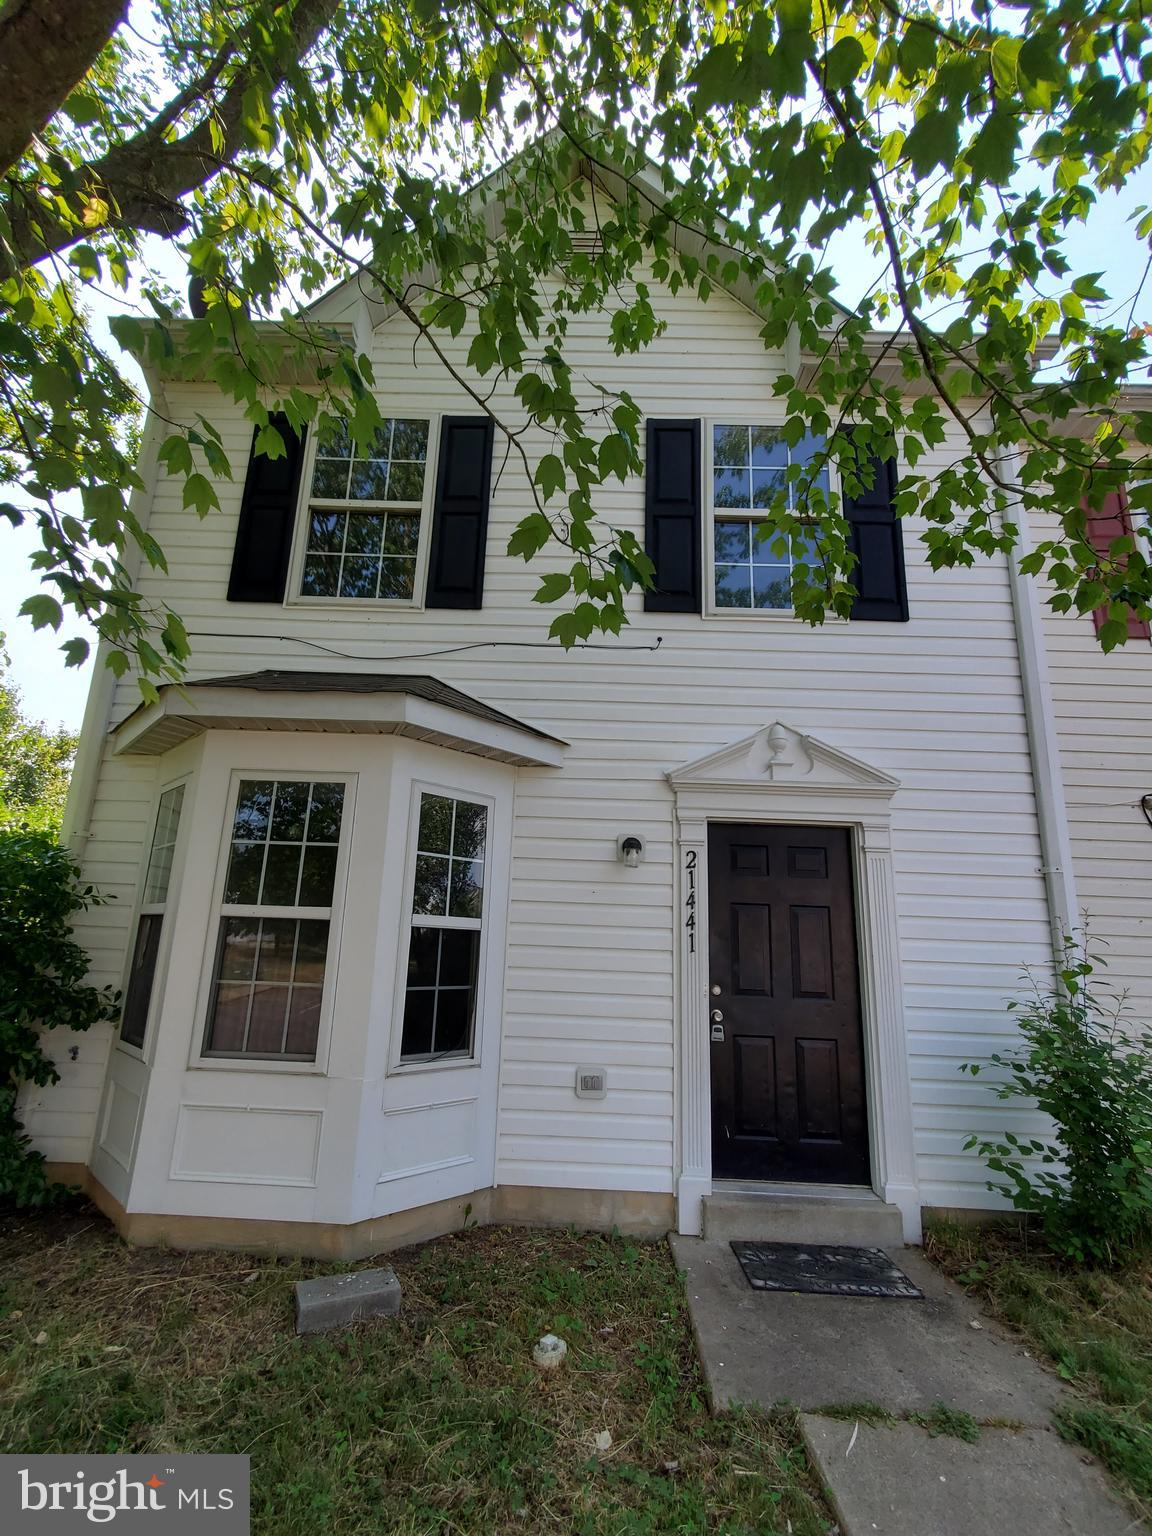 THIS 3 BEDROOM IDEAL END UNIT TOWNHOME FEATURES NEW PAINT, CARPET, APPLIANCES AND FIXTURES! NEWER HE